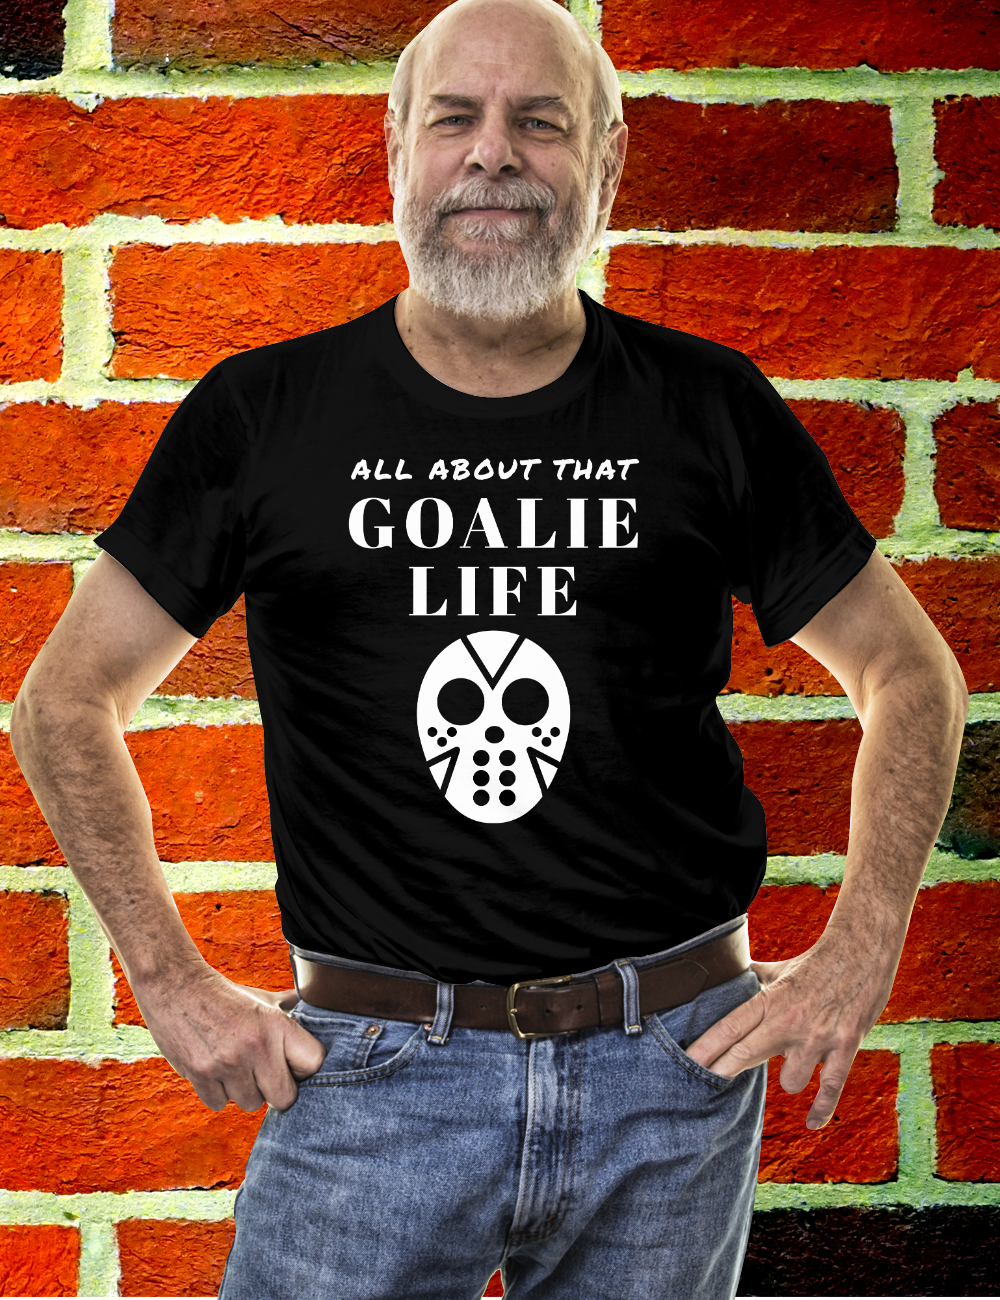 Ice Hockey Goalie ALL ABOUT THAT GOALIE LIFE Tshirt